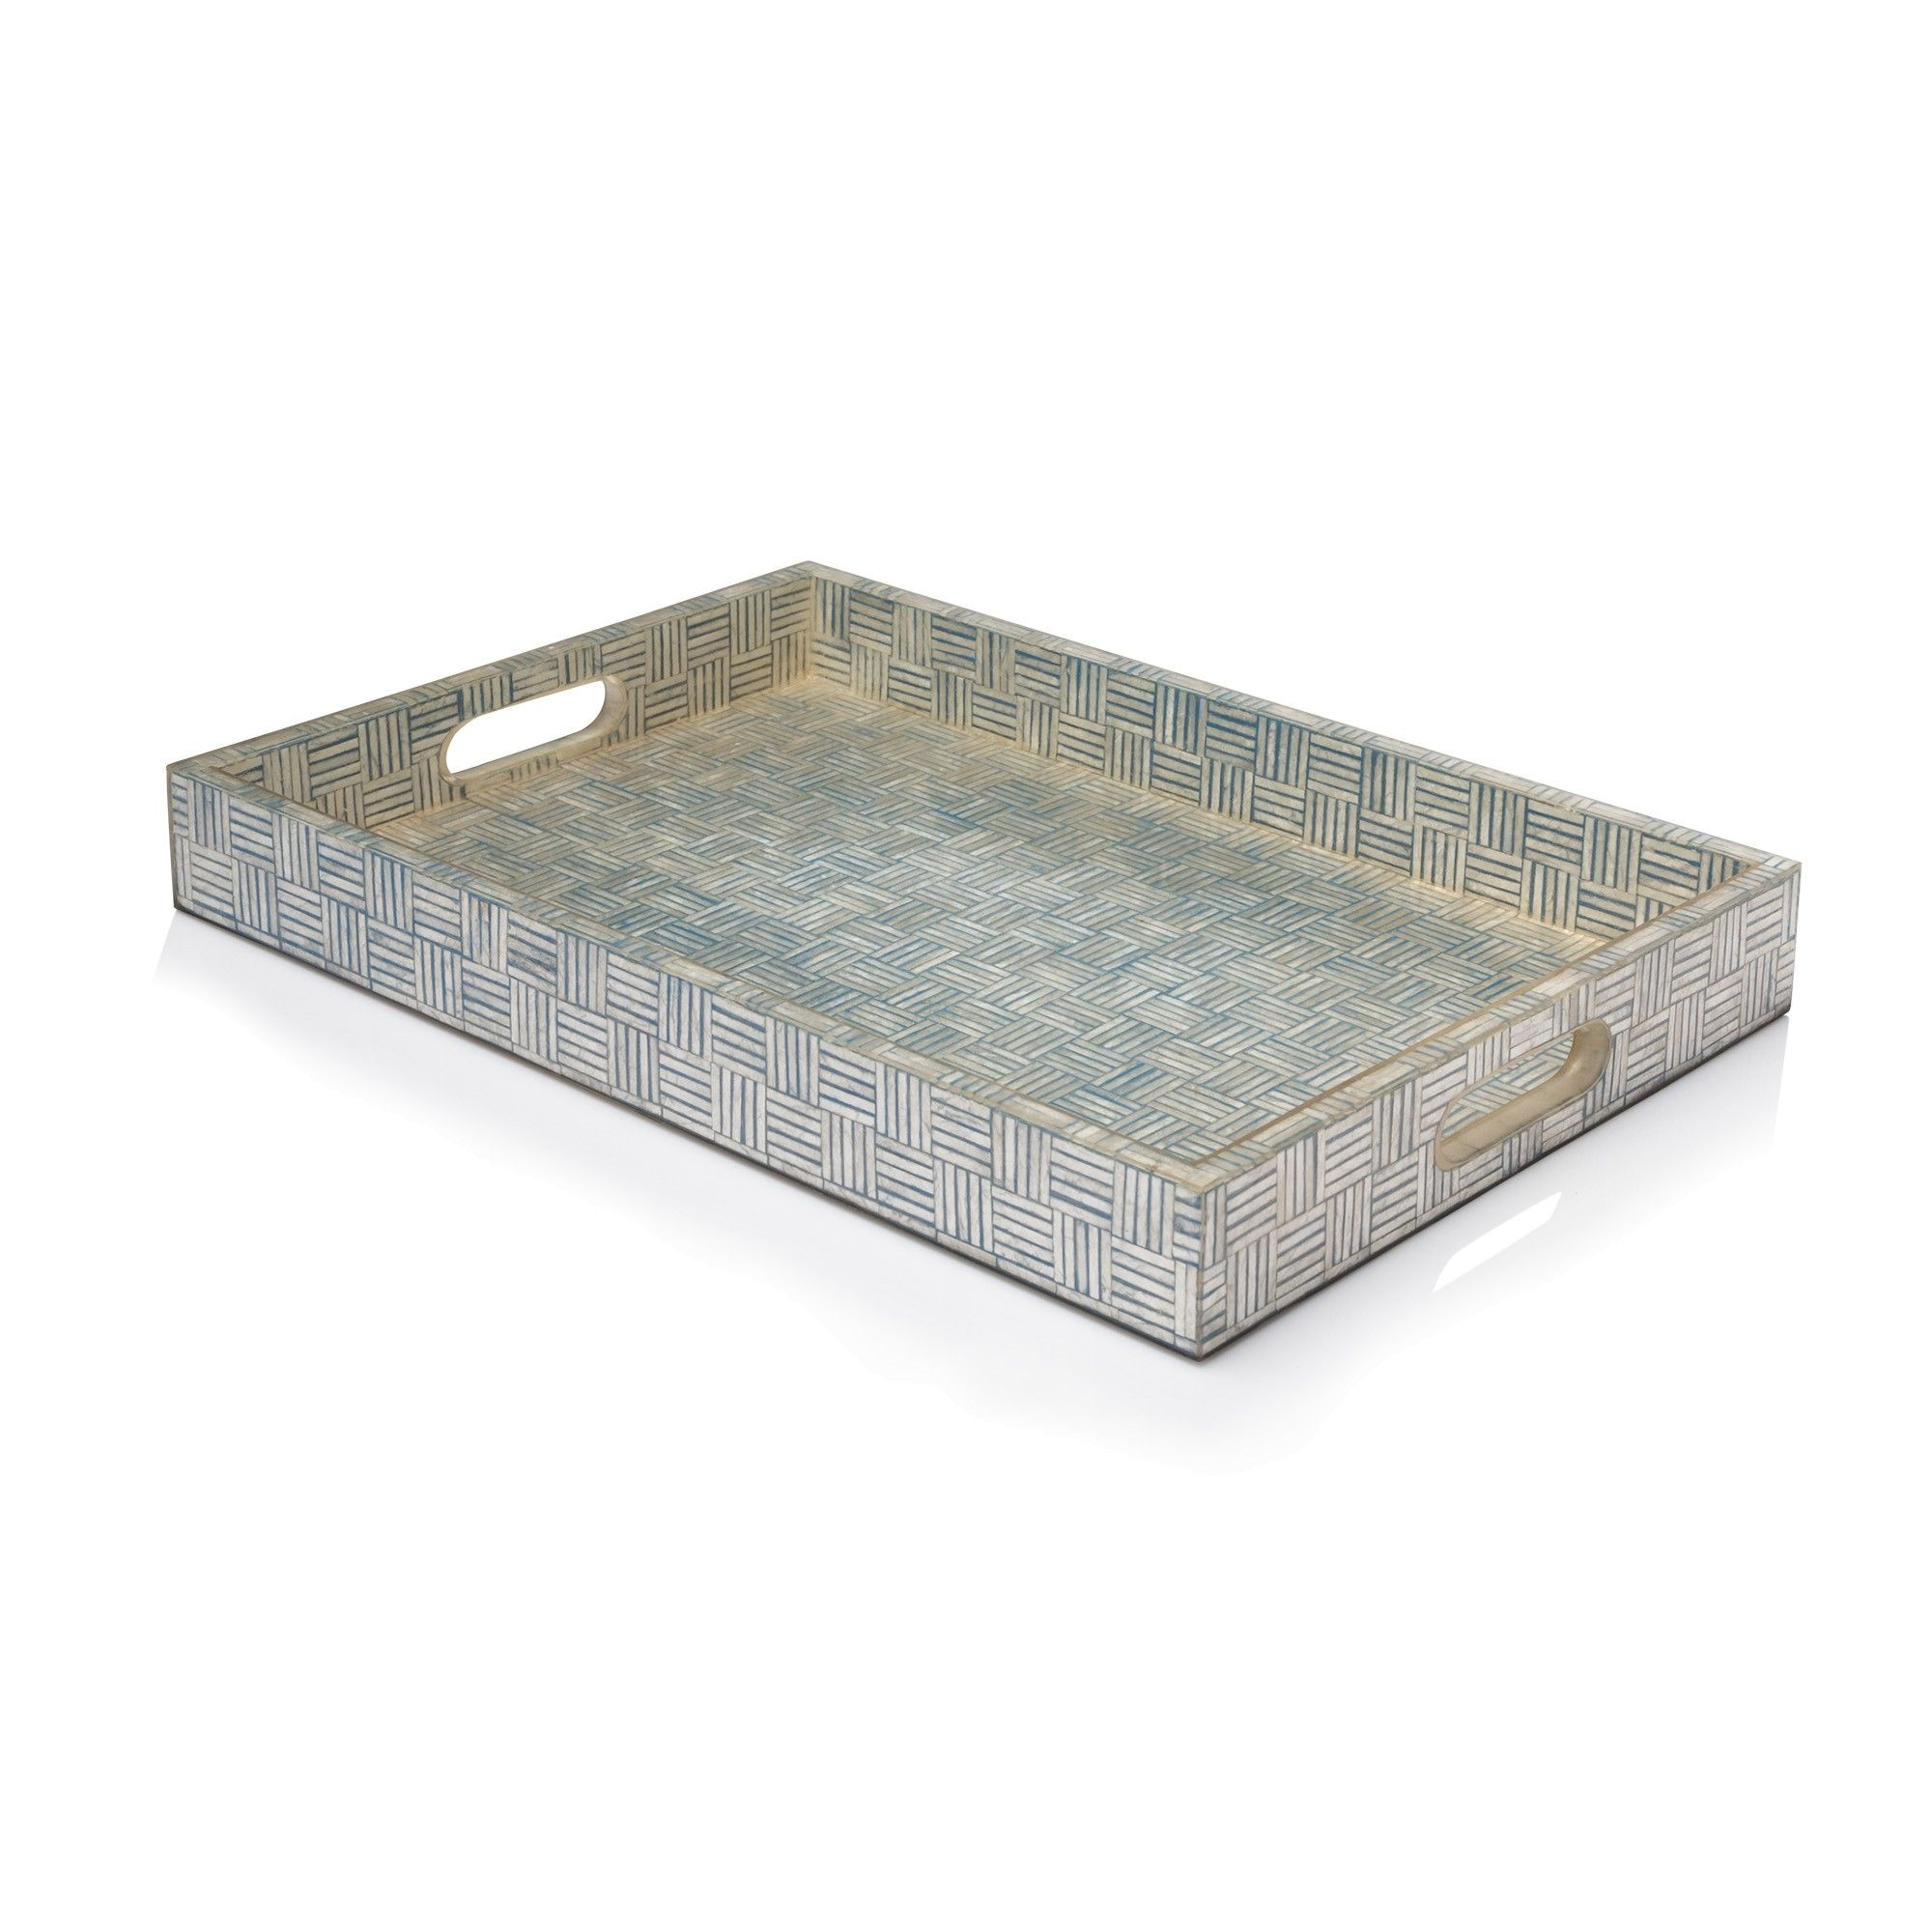 White Decorative Tray Decorative Tray With Intricate Inlay Of Turquoise And White Capiz